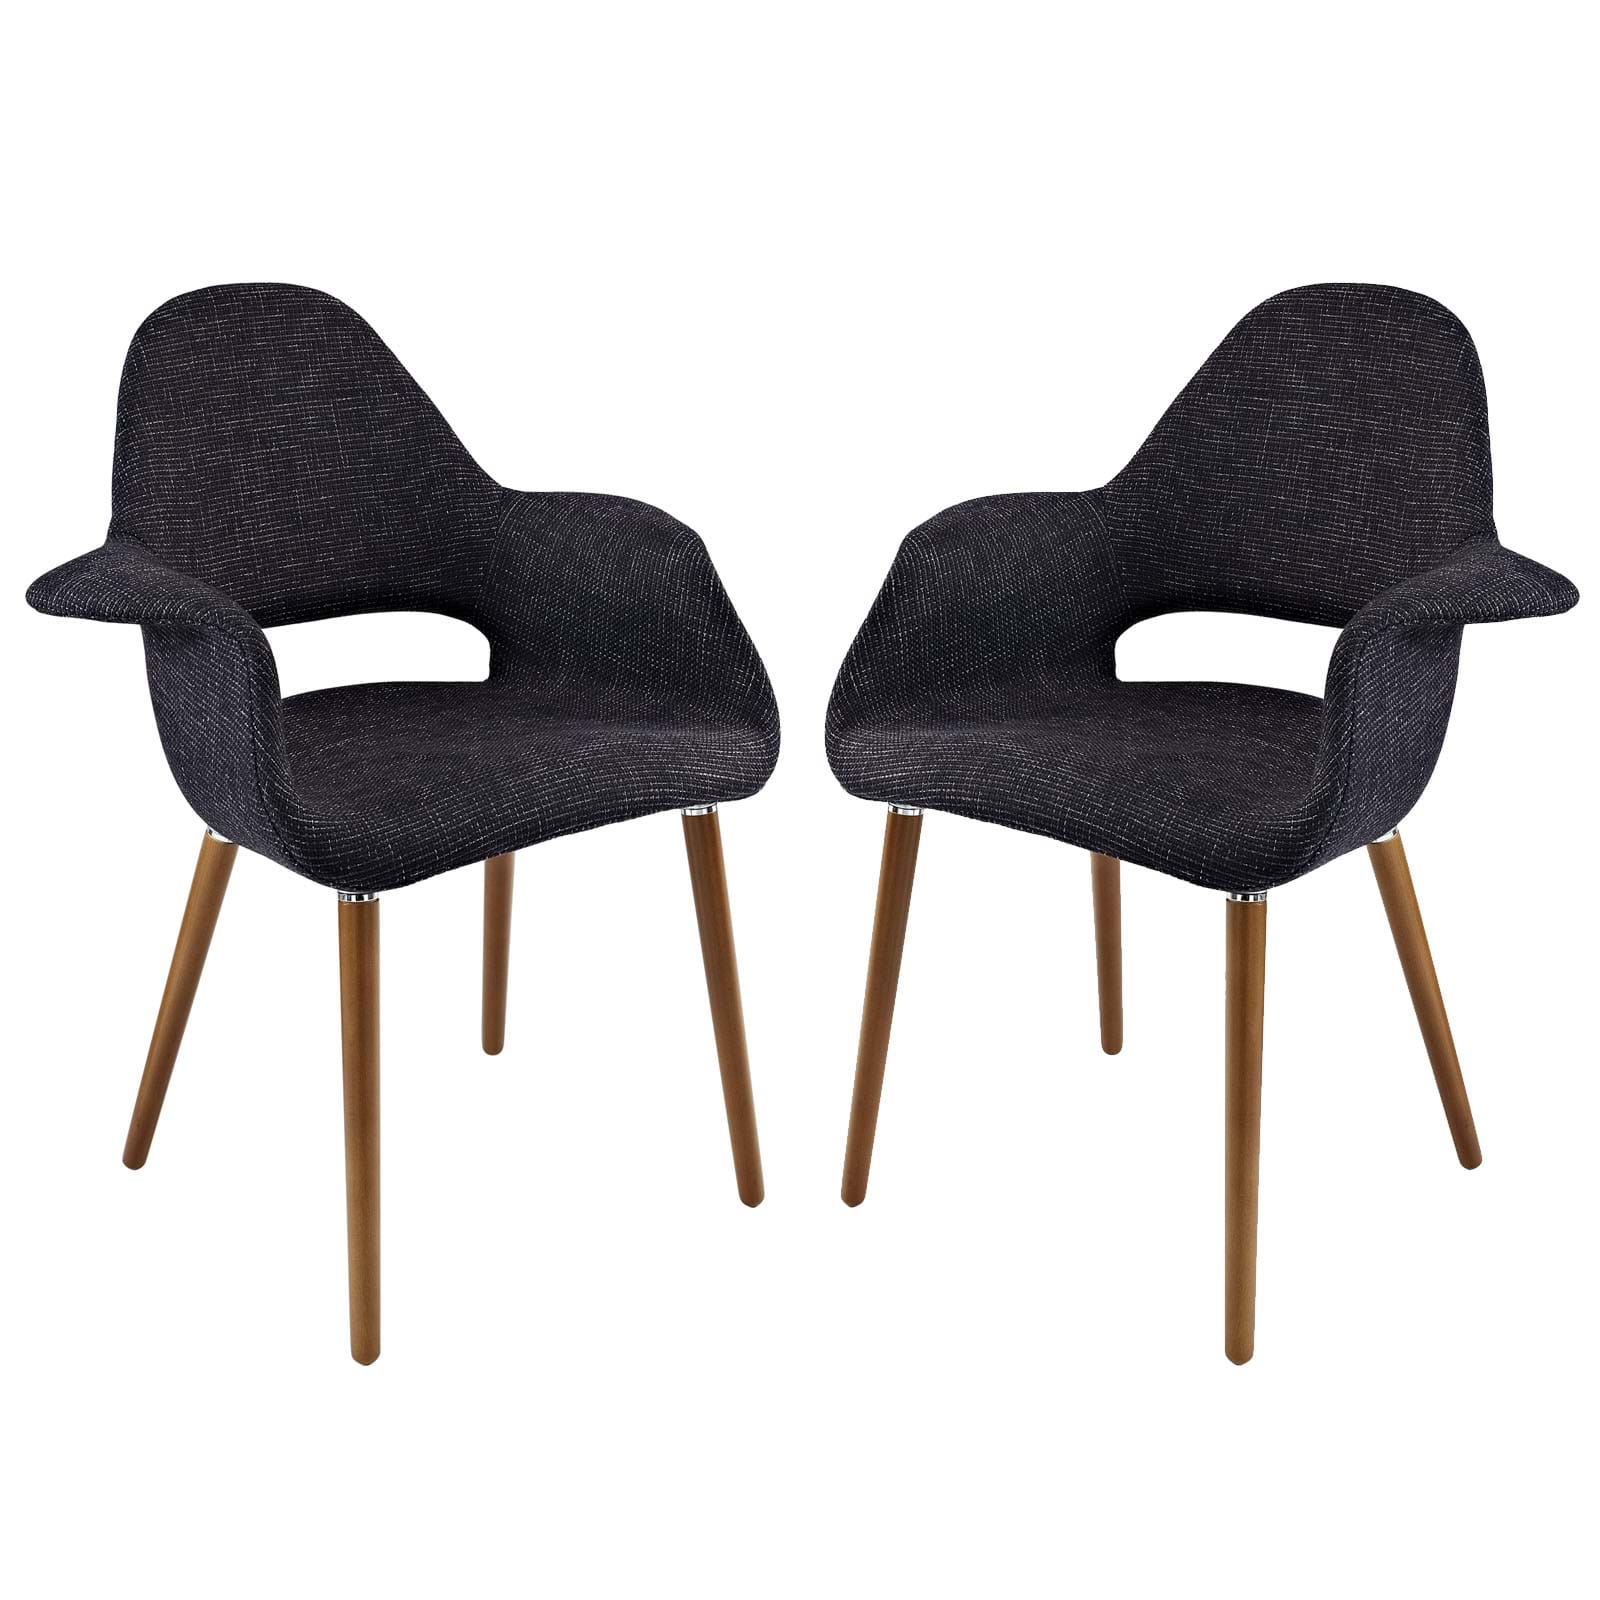 Aegis Dining Armchair Set of 2